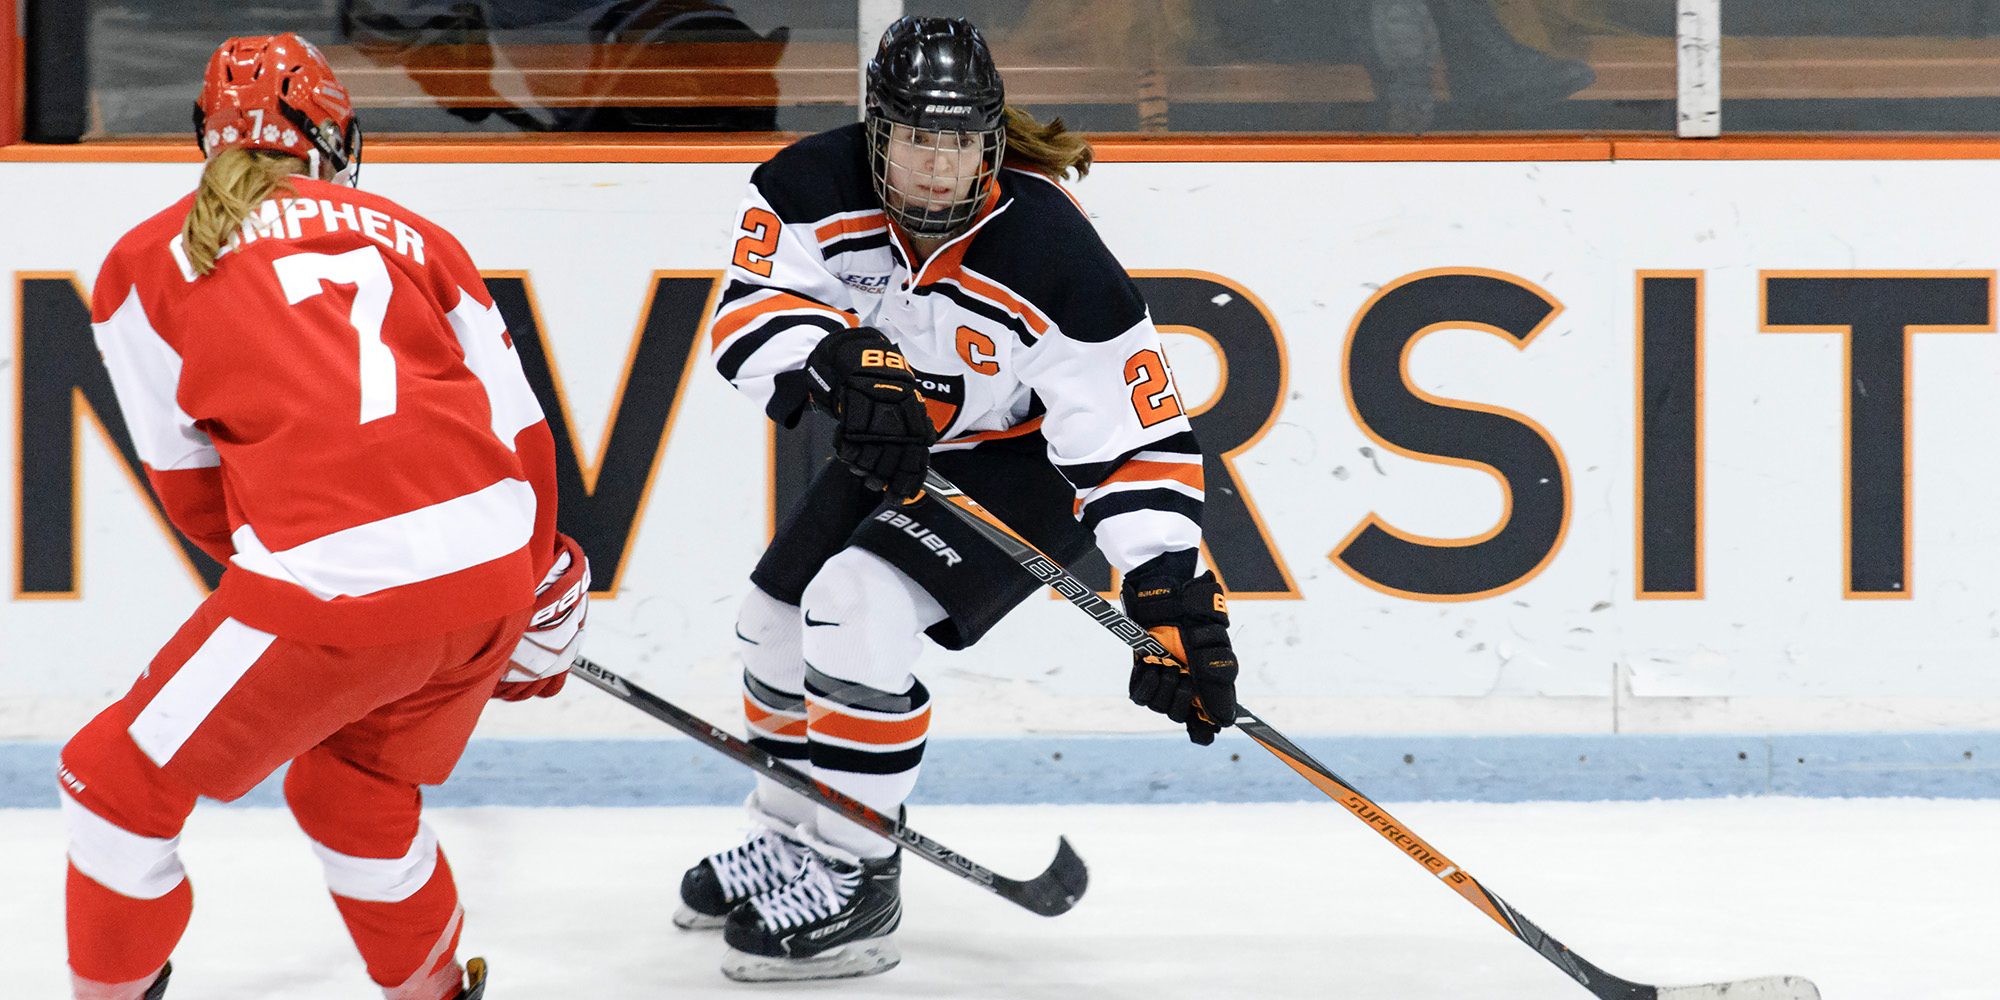 Falck Scores in Princeton's Draw with BU